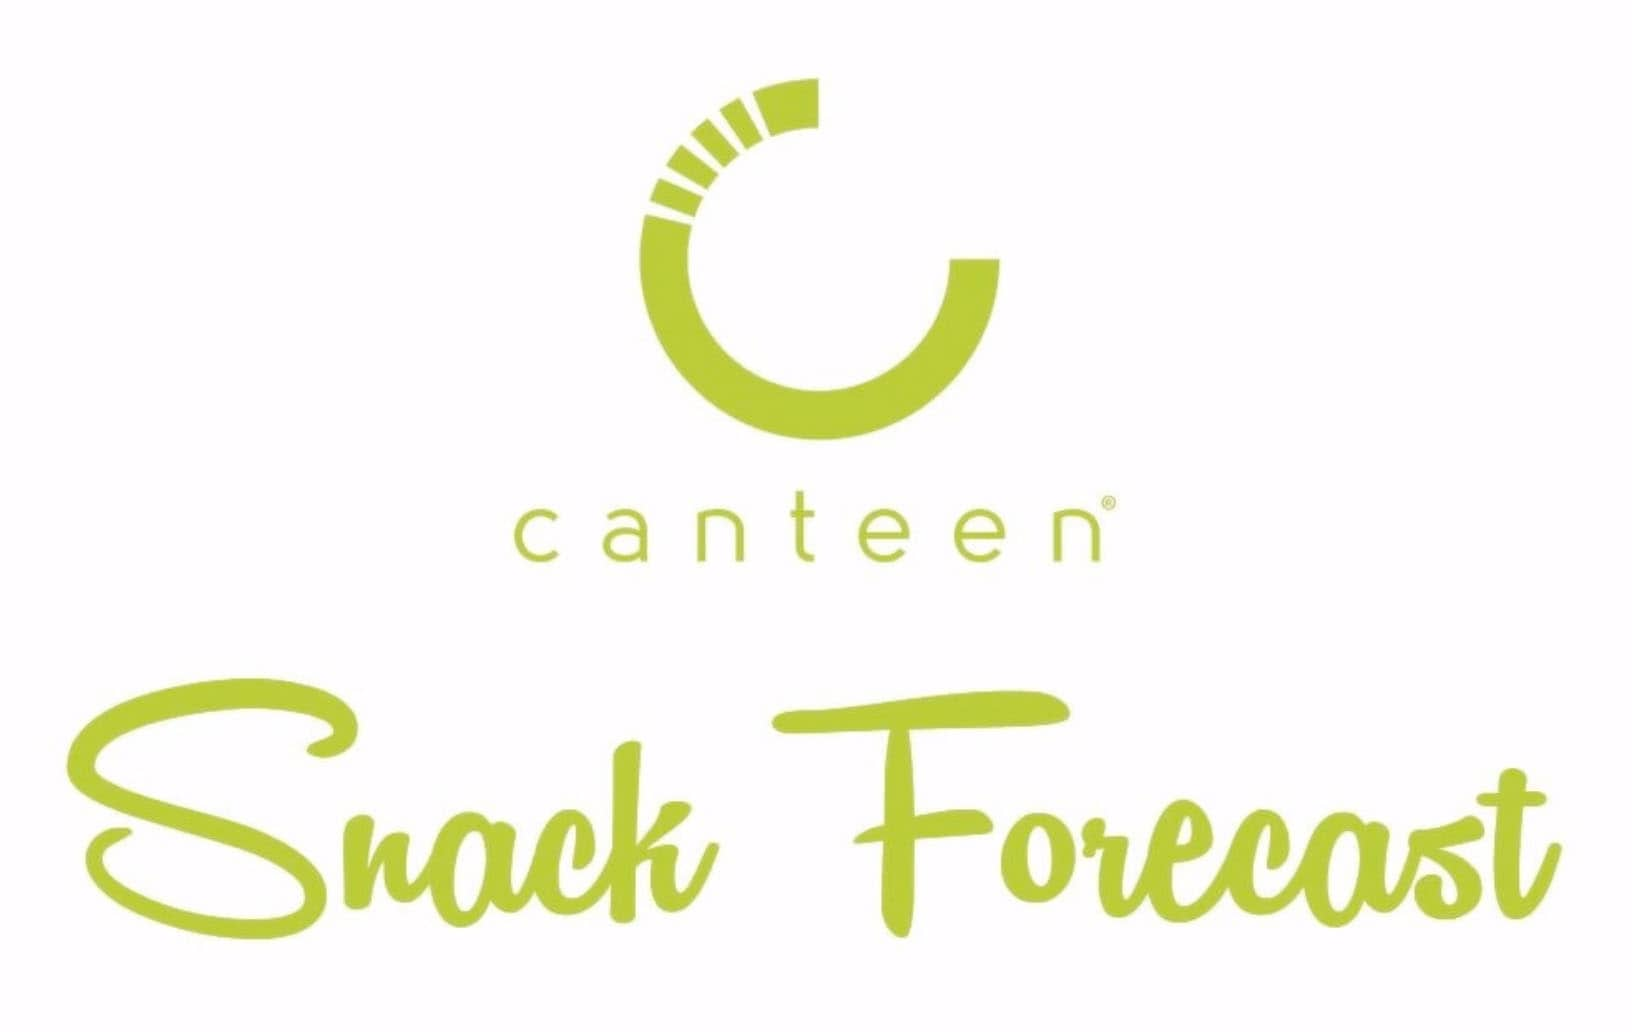 2017 Snack and Drink Trends